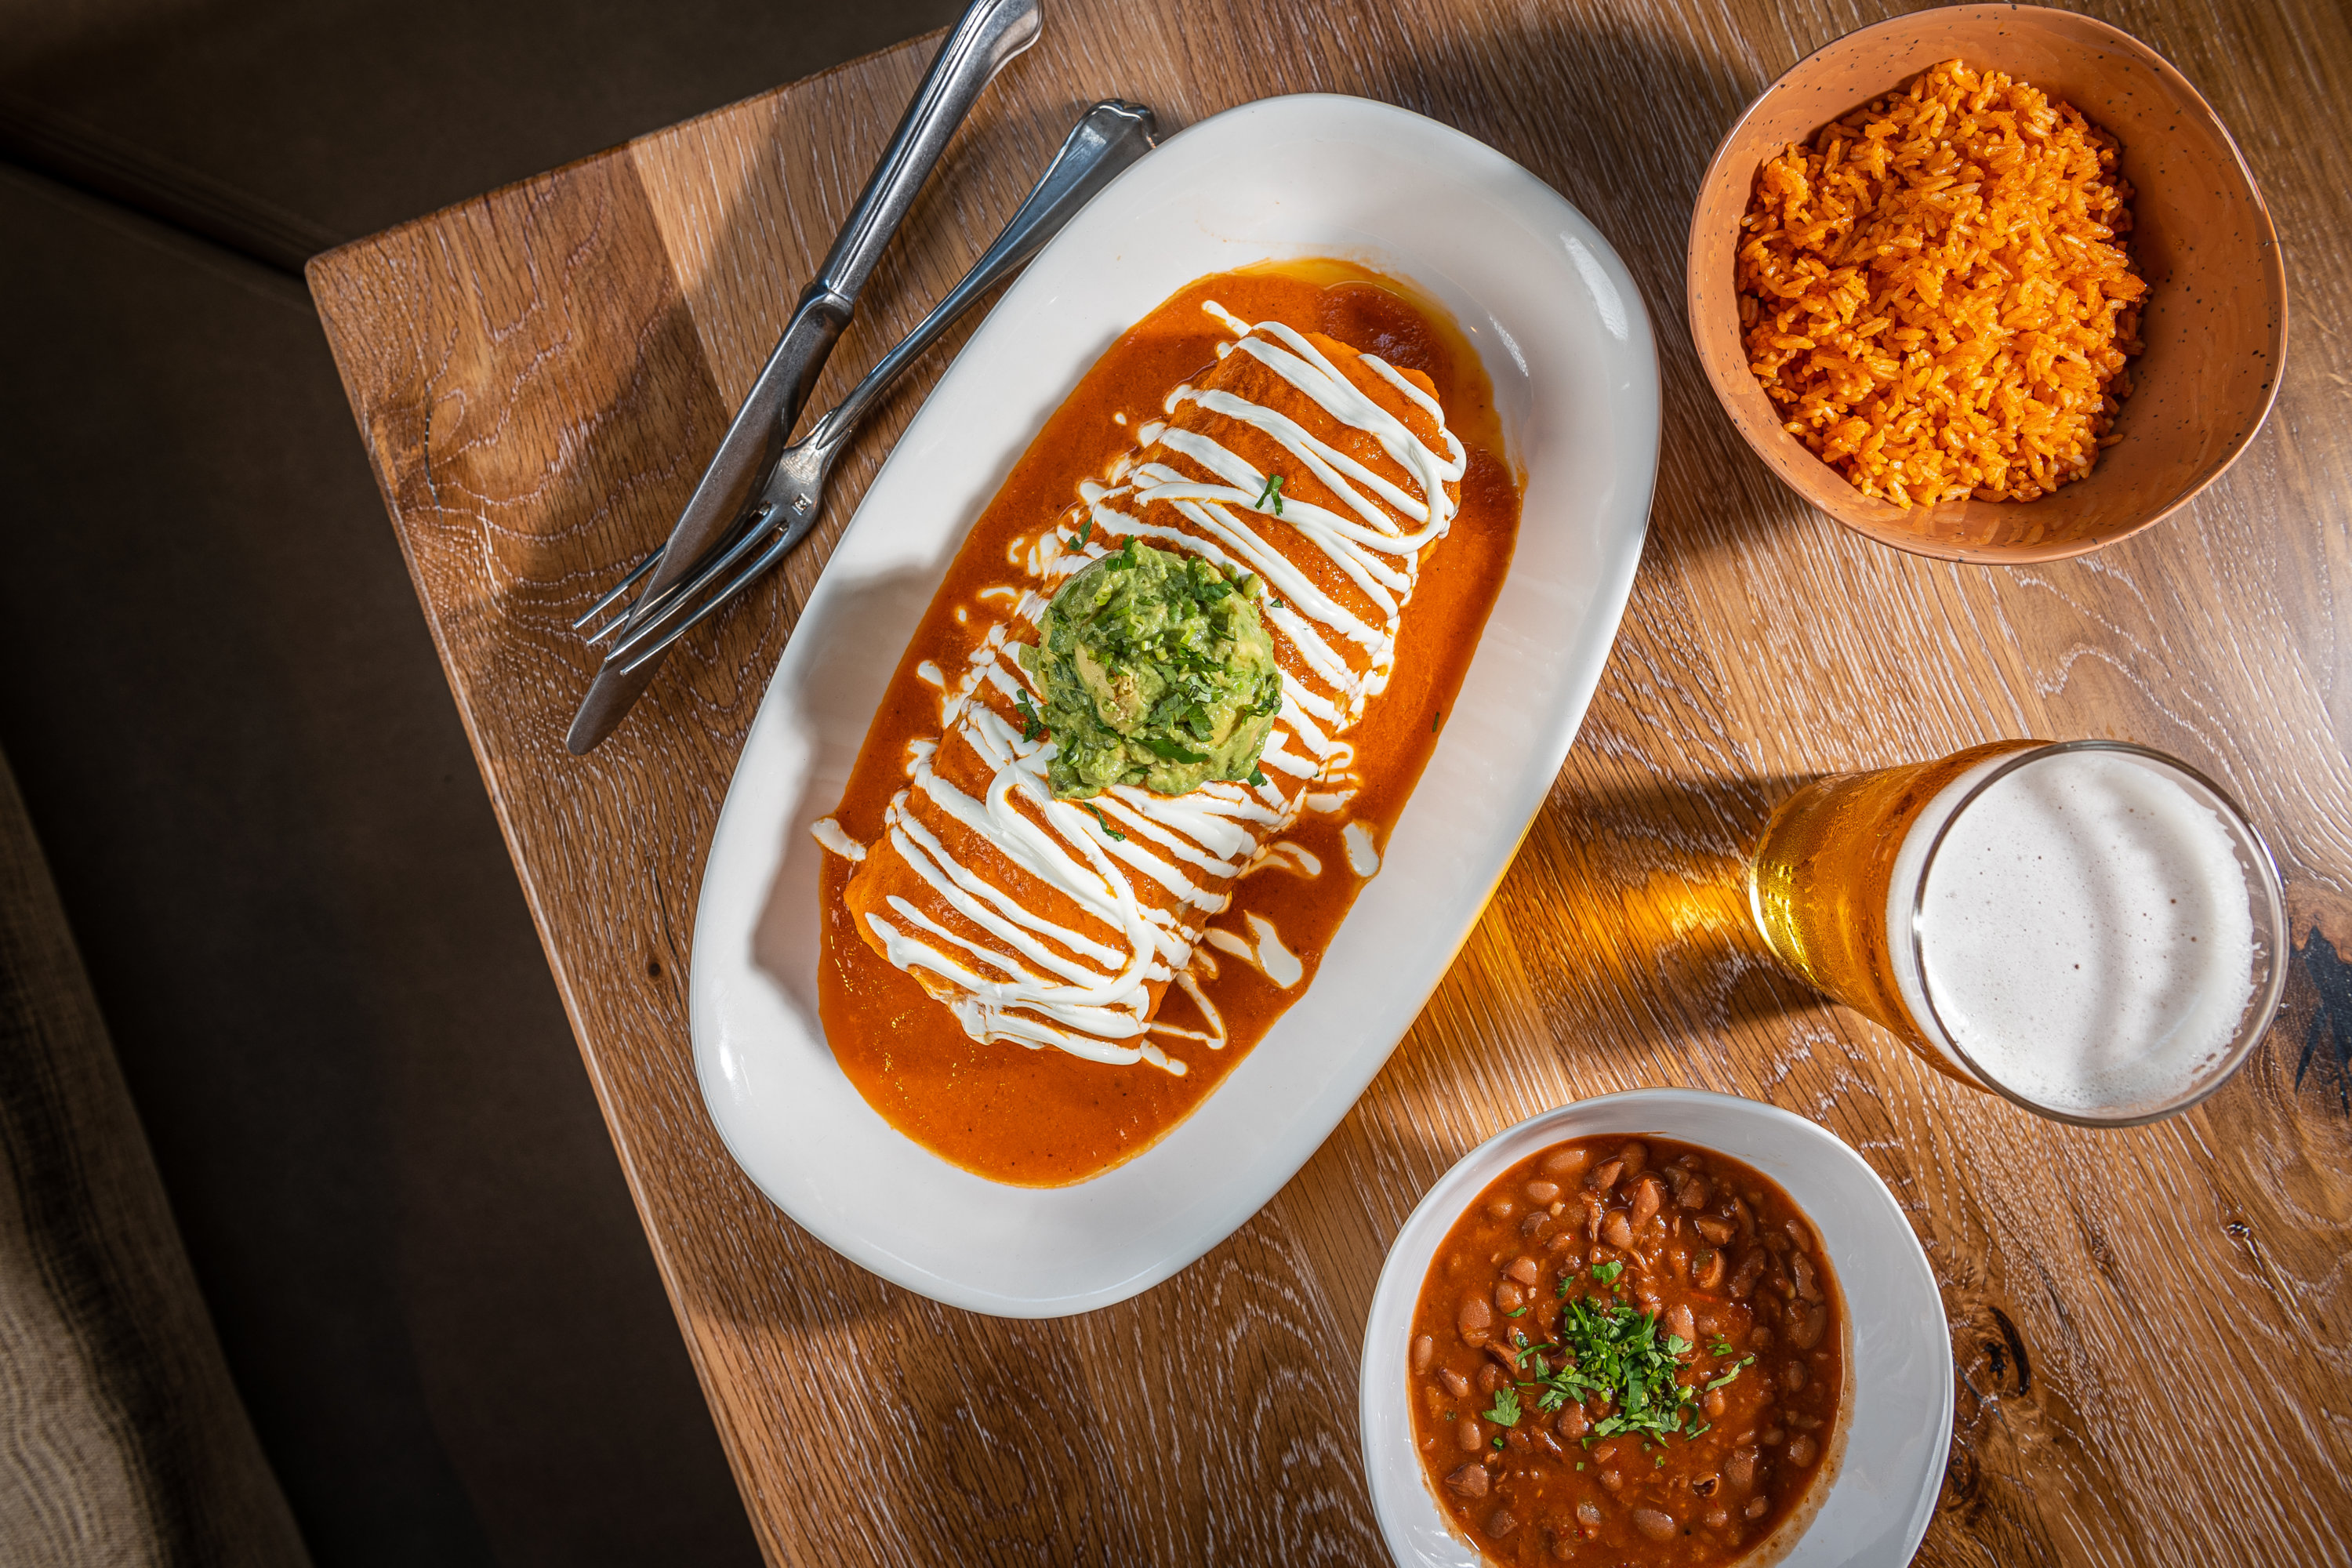 Burritos are layered with ranchero sauce. Photo by Rey Lopez.